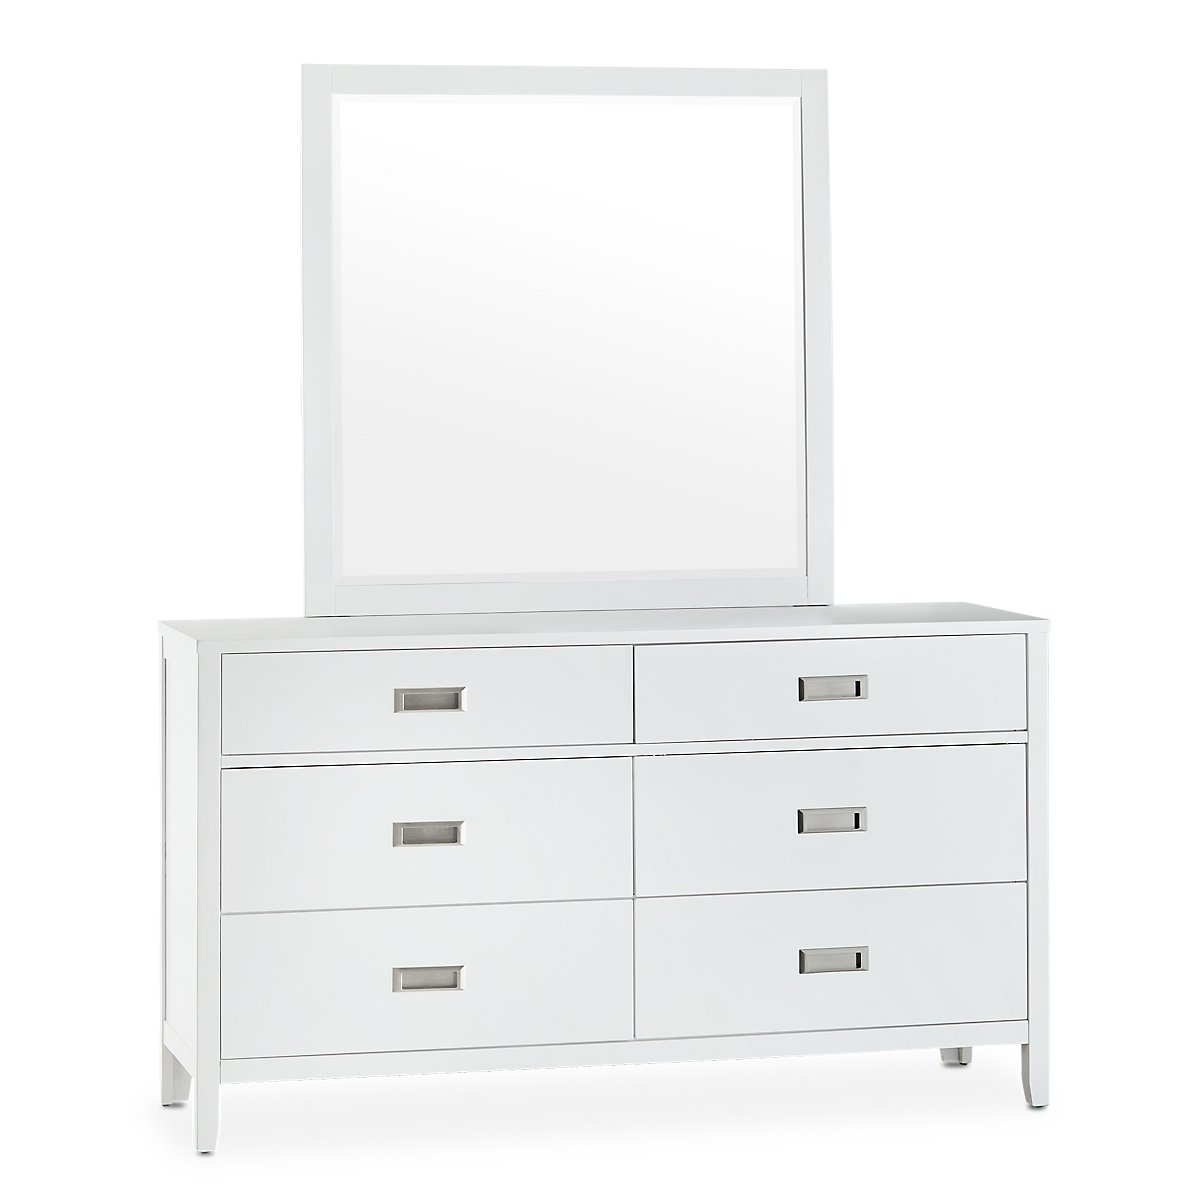 Chatham White Wood Dresser & Mirror | Bedroom - Dressers ...